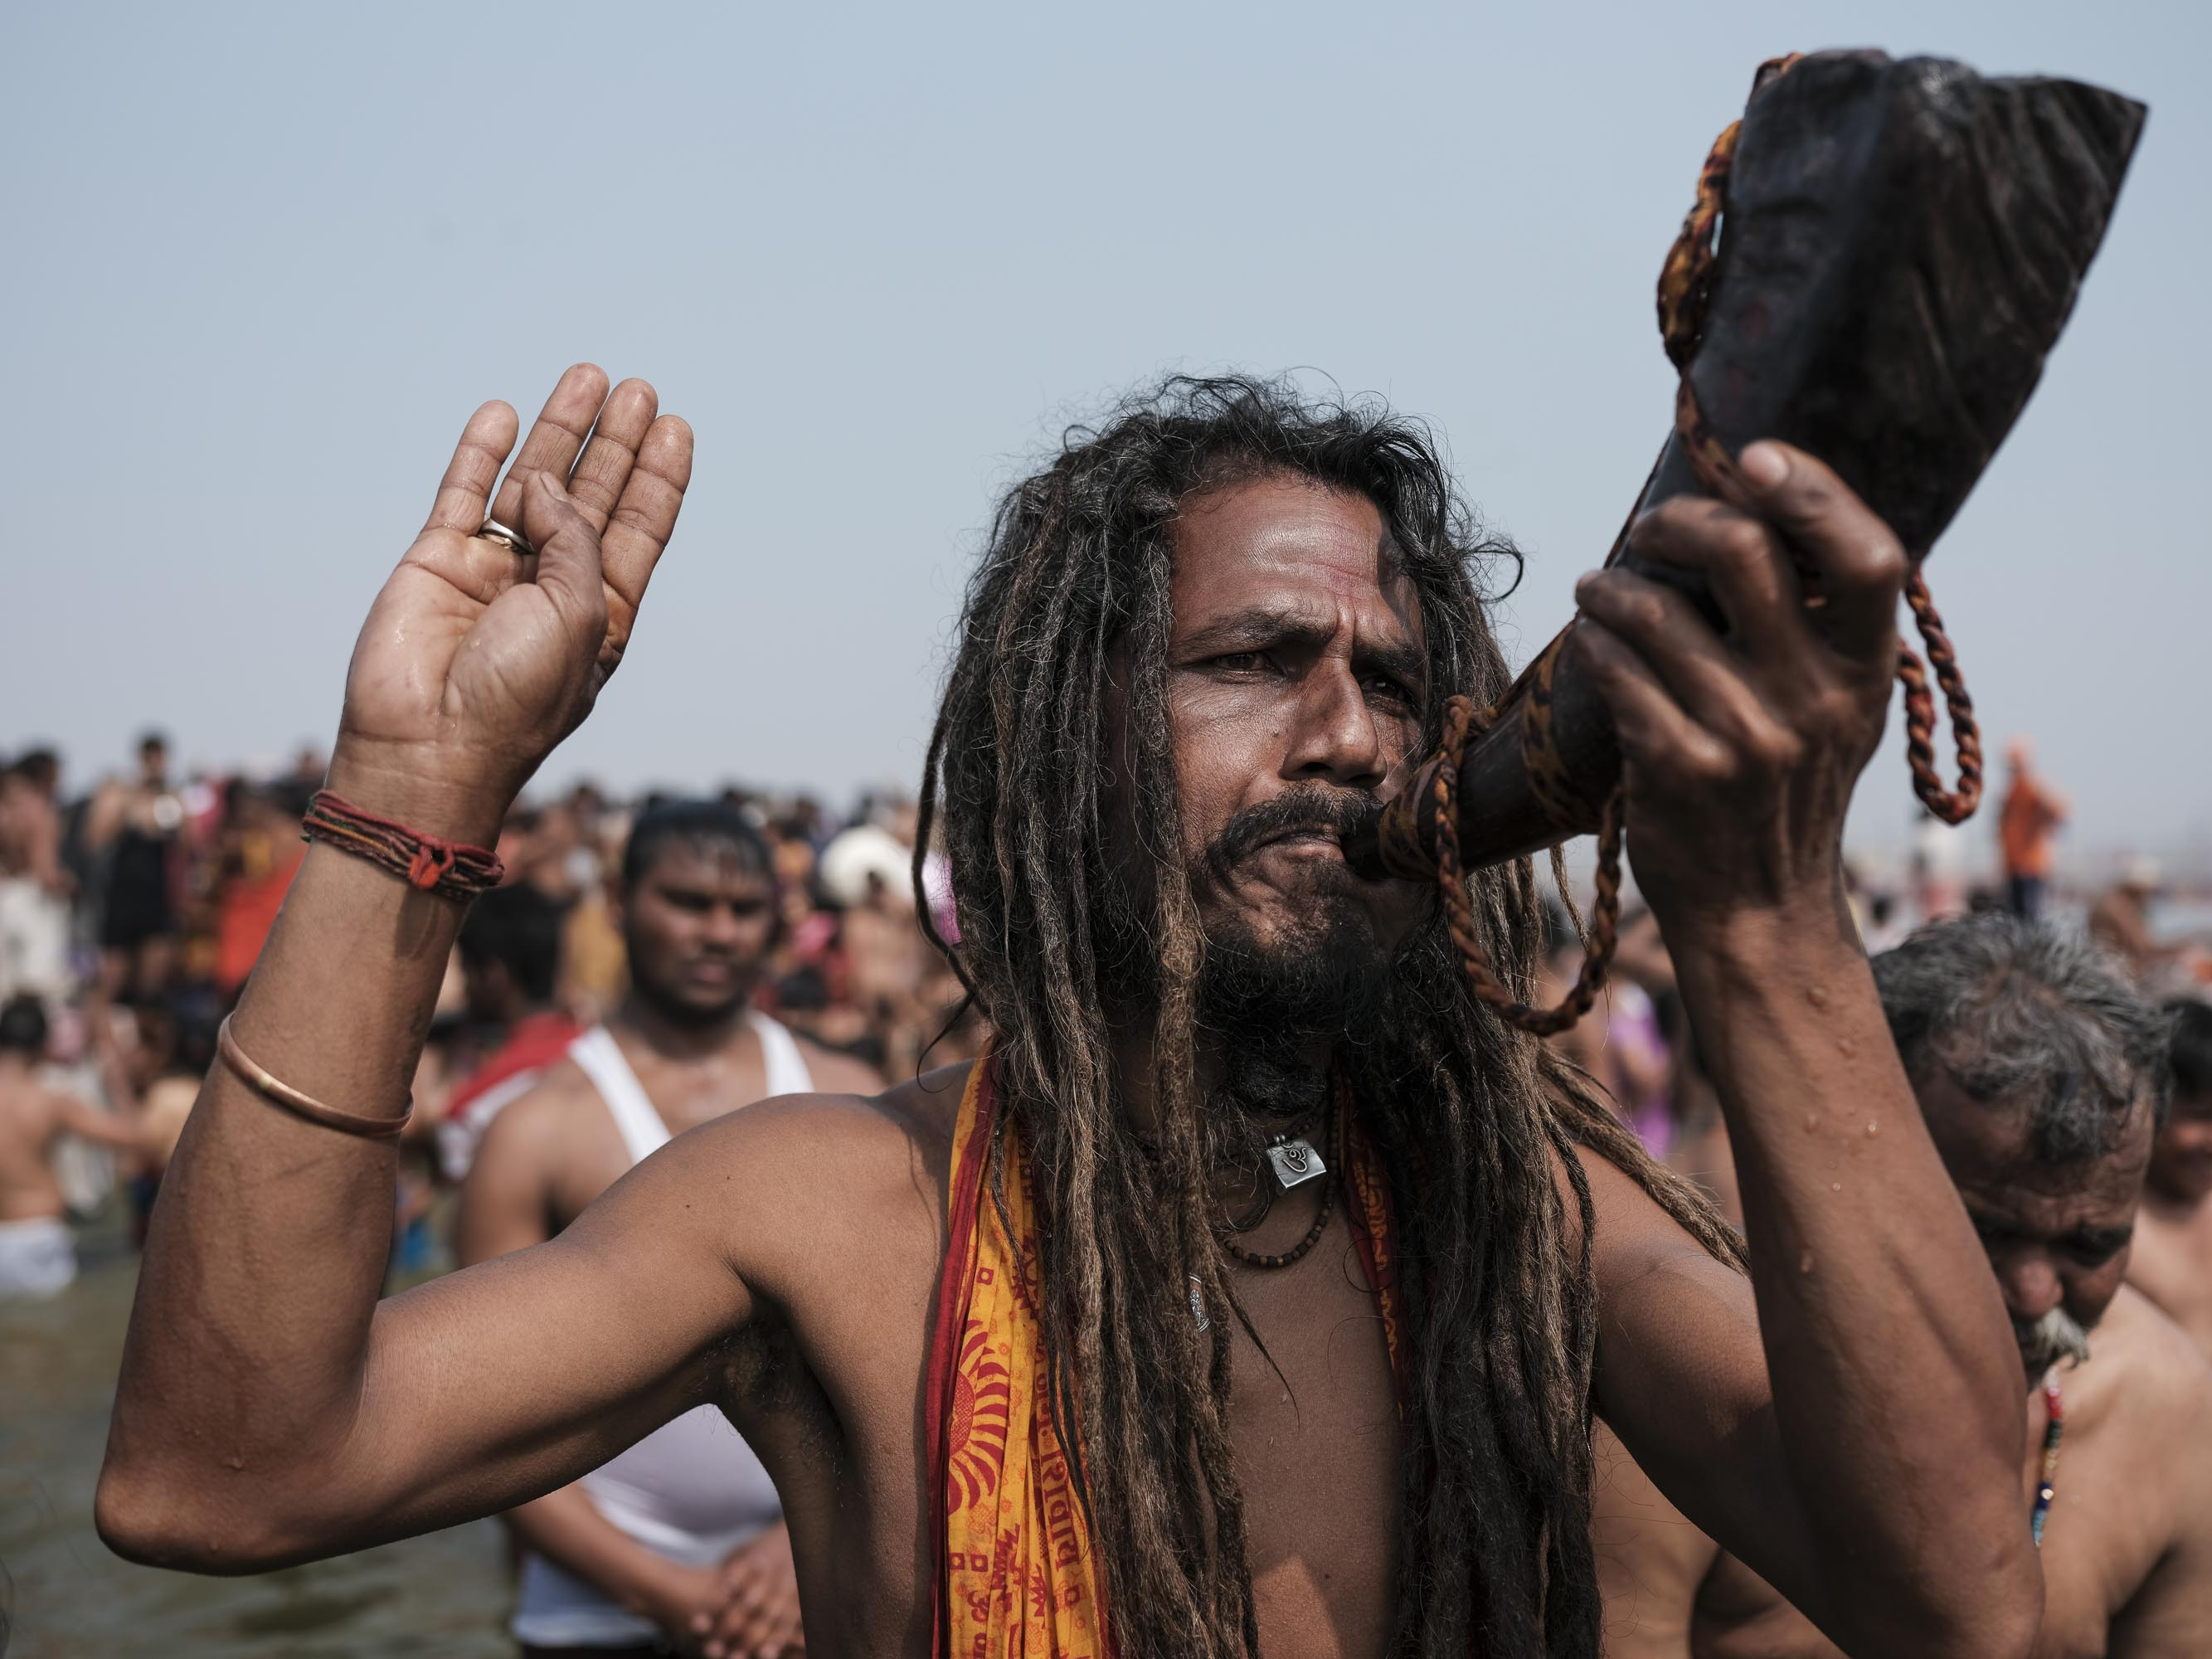 in the water baba hair pilgrims Kumbh mela 2019 India Allahabad Prayagraj Ardh hindu religious Festival event rivers photographer jose jeuland photography